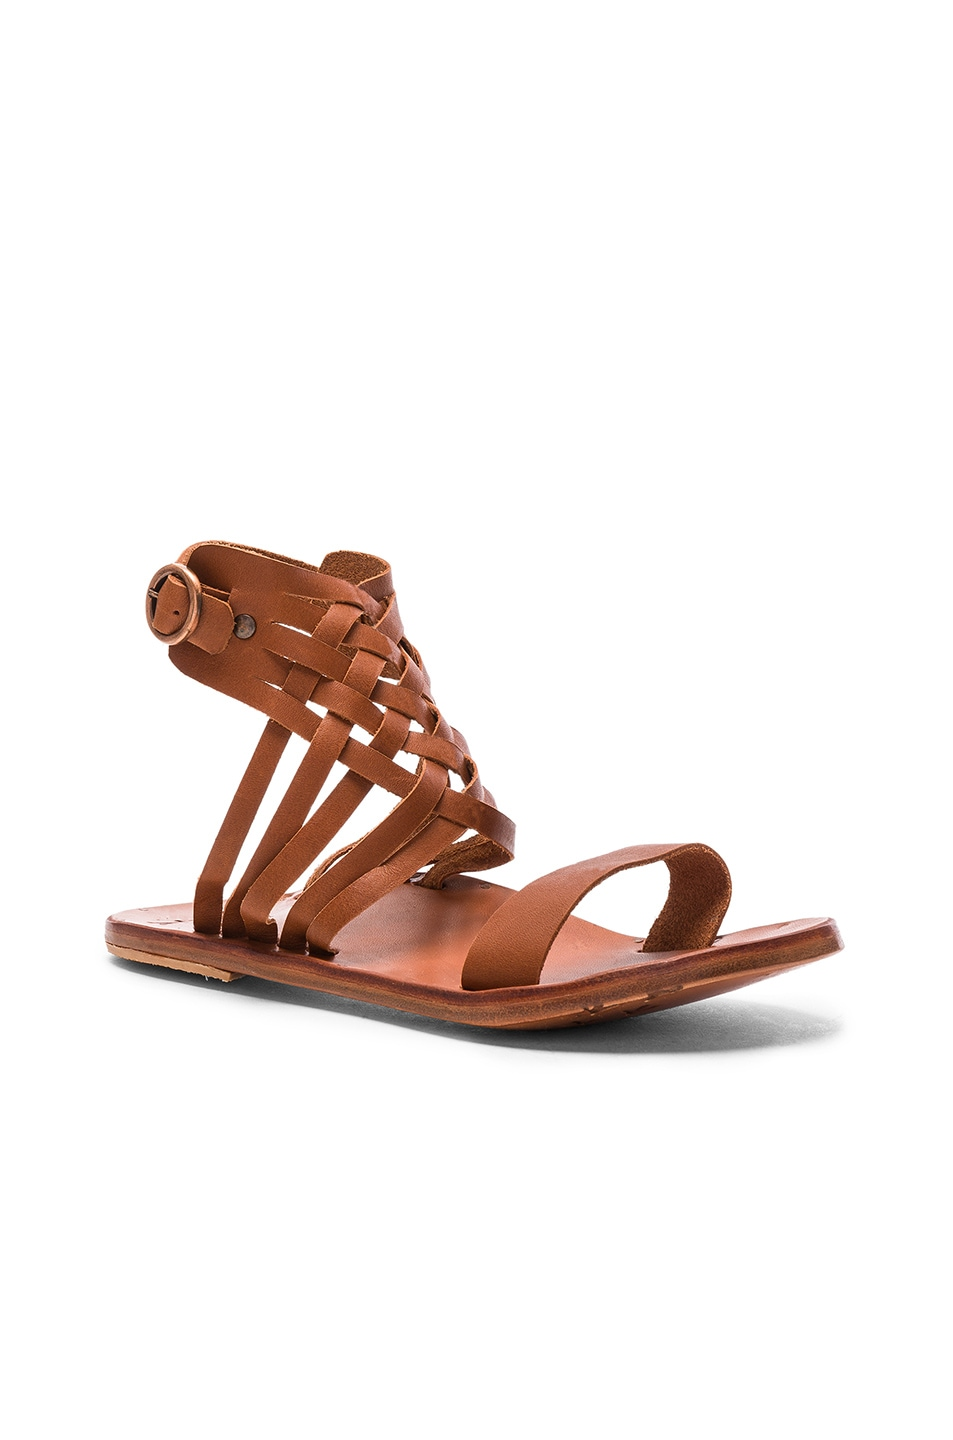 Image 2 of Beek The Raven Sandals in Tan